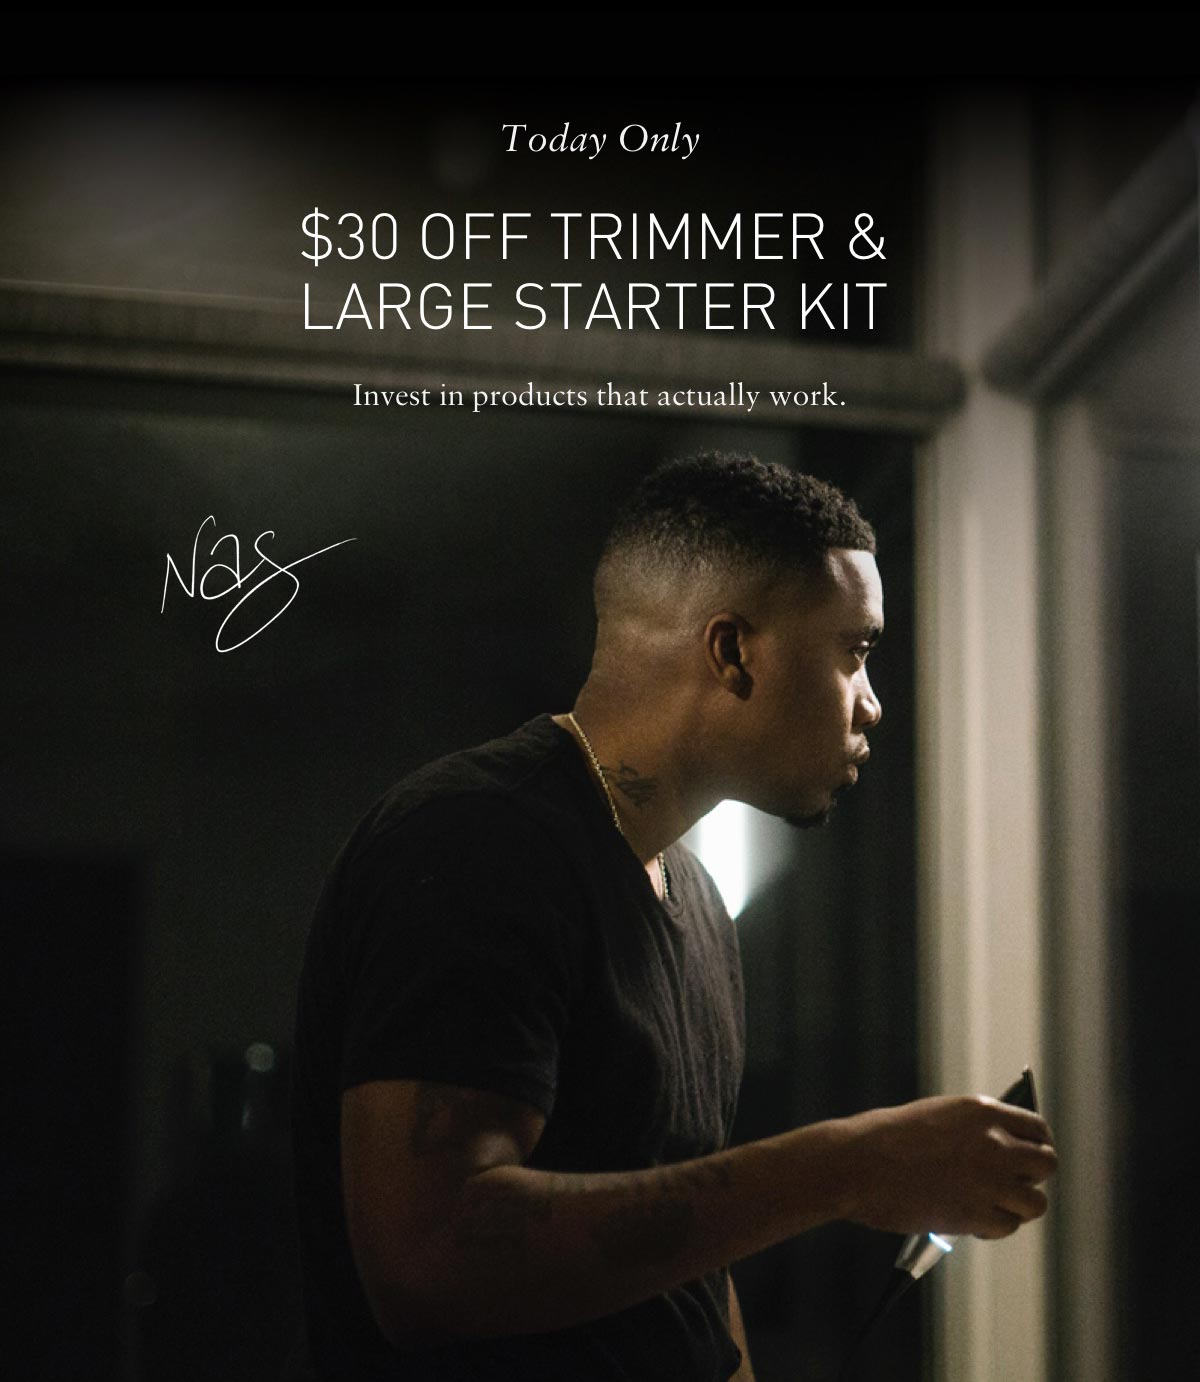 Today Only $30 off trimmer and large starter kit